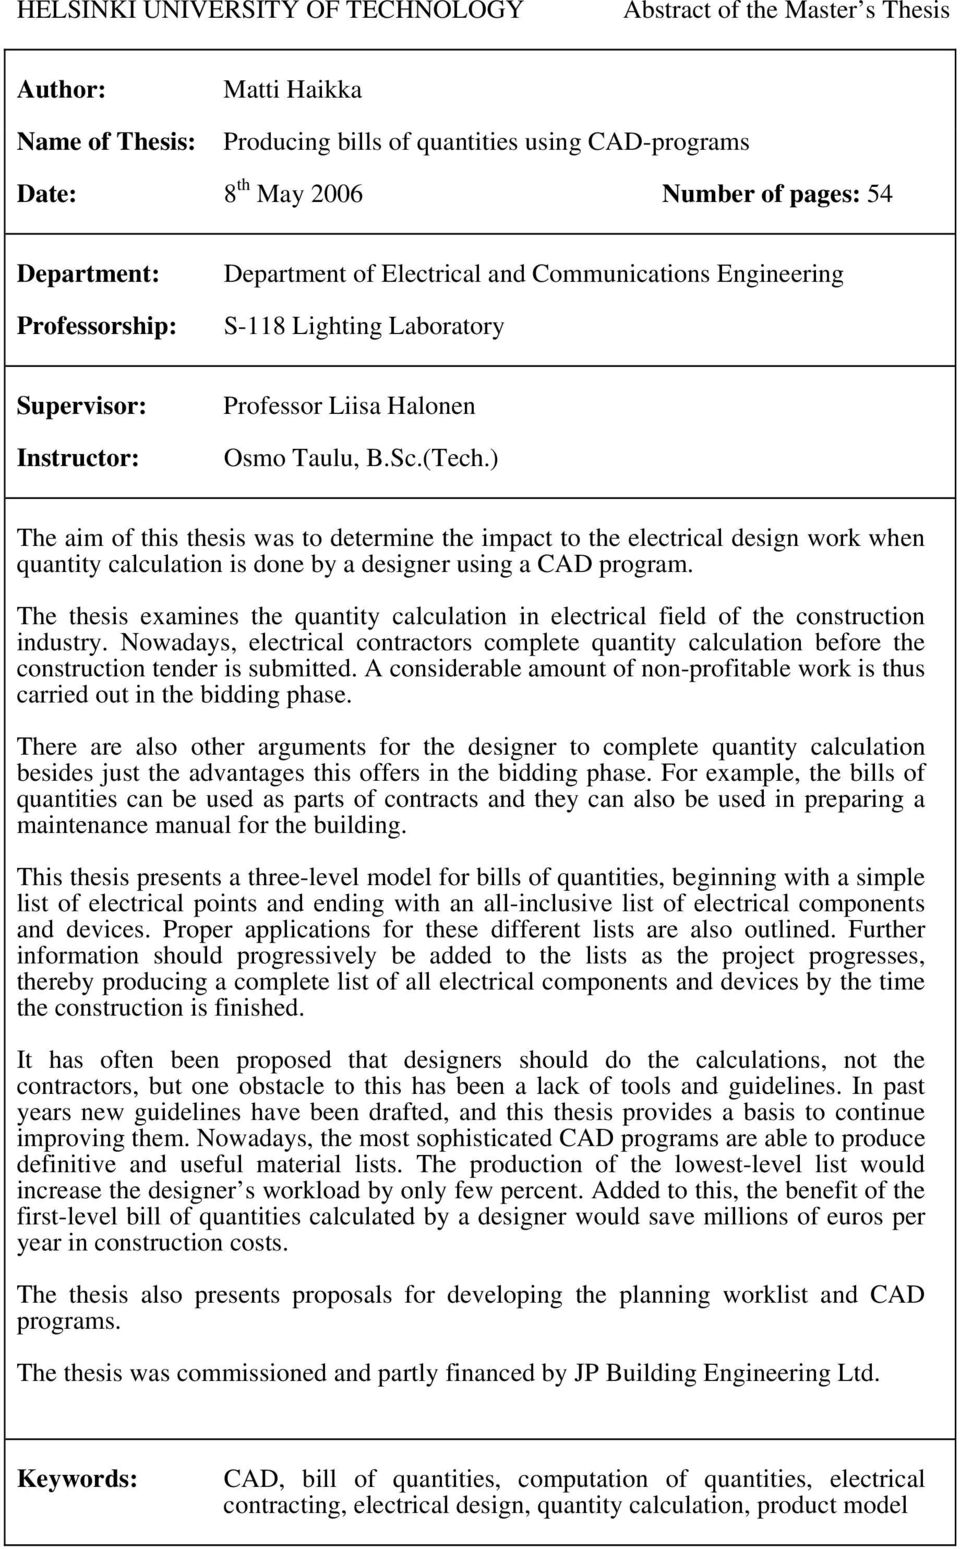 ) The aim of this thesis was to determine the impact to the electrical design work when quantity calculation is done by a designer using a CAD program.